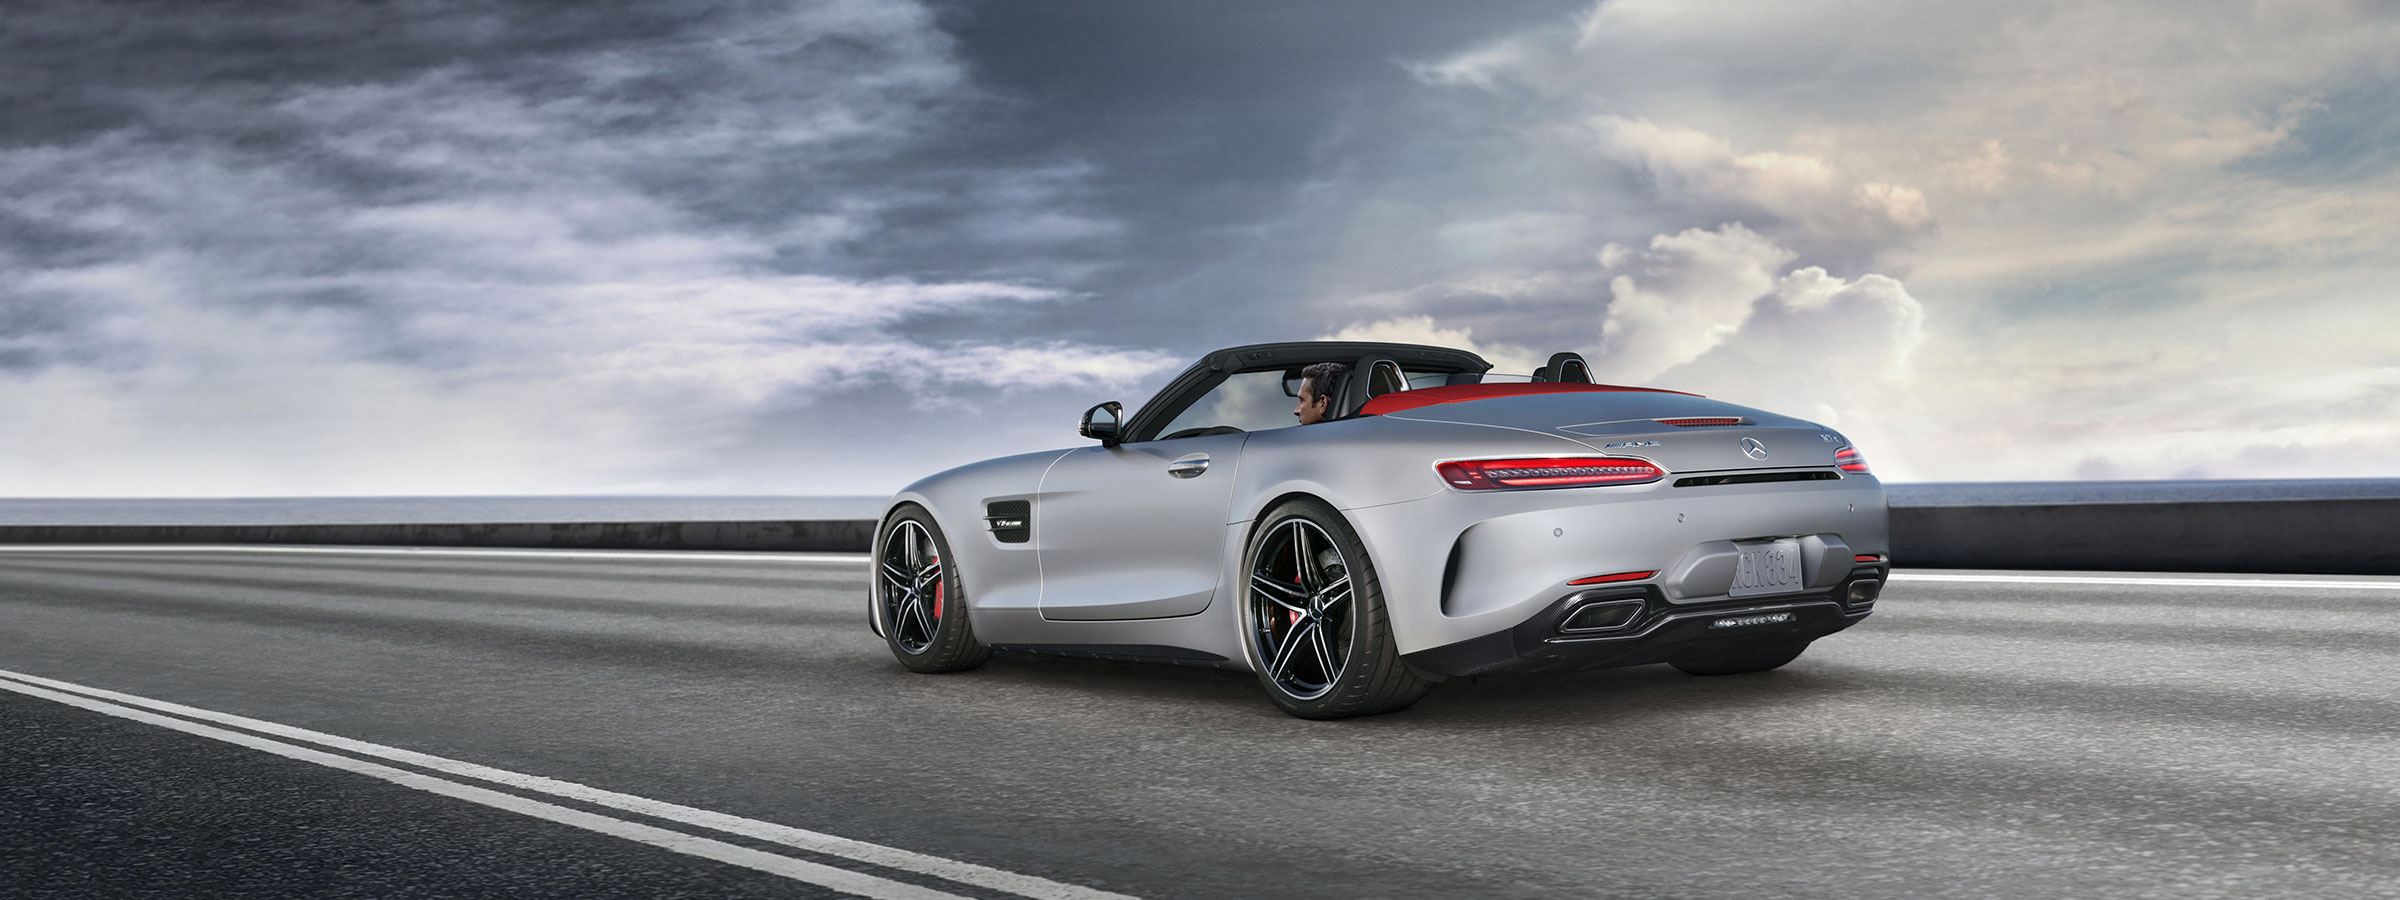 2018 mercedes amg performance gt roadster sports car. Black Bedroom Furniture Sets. Home Design Ideas